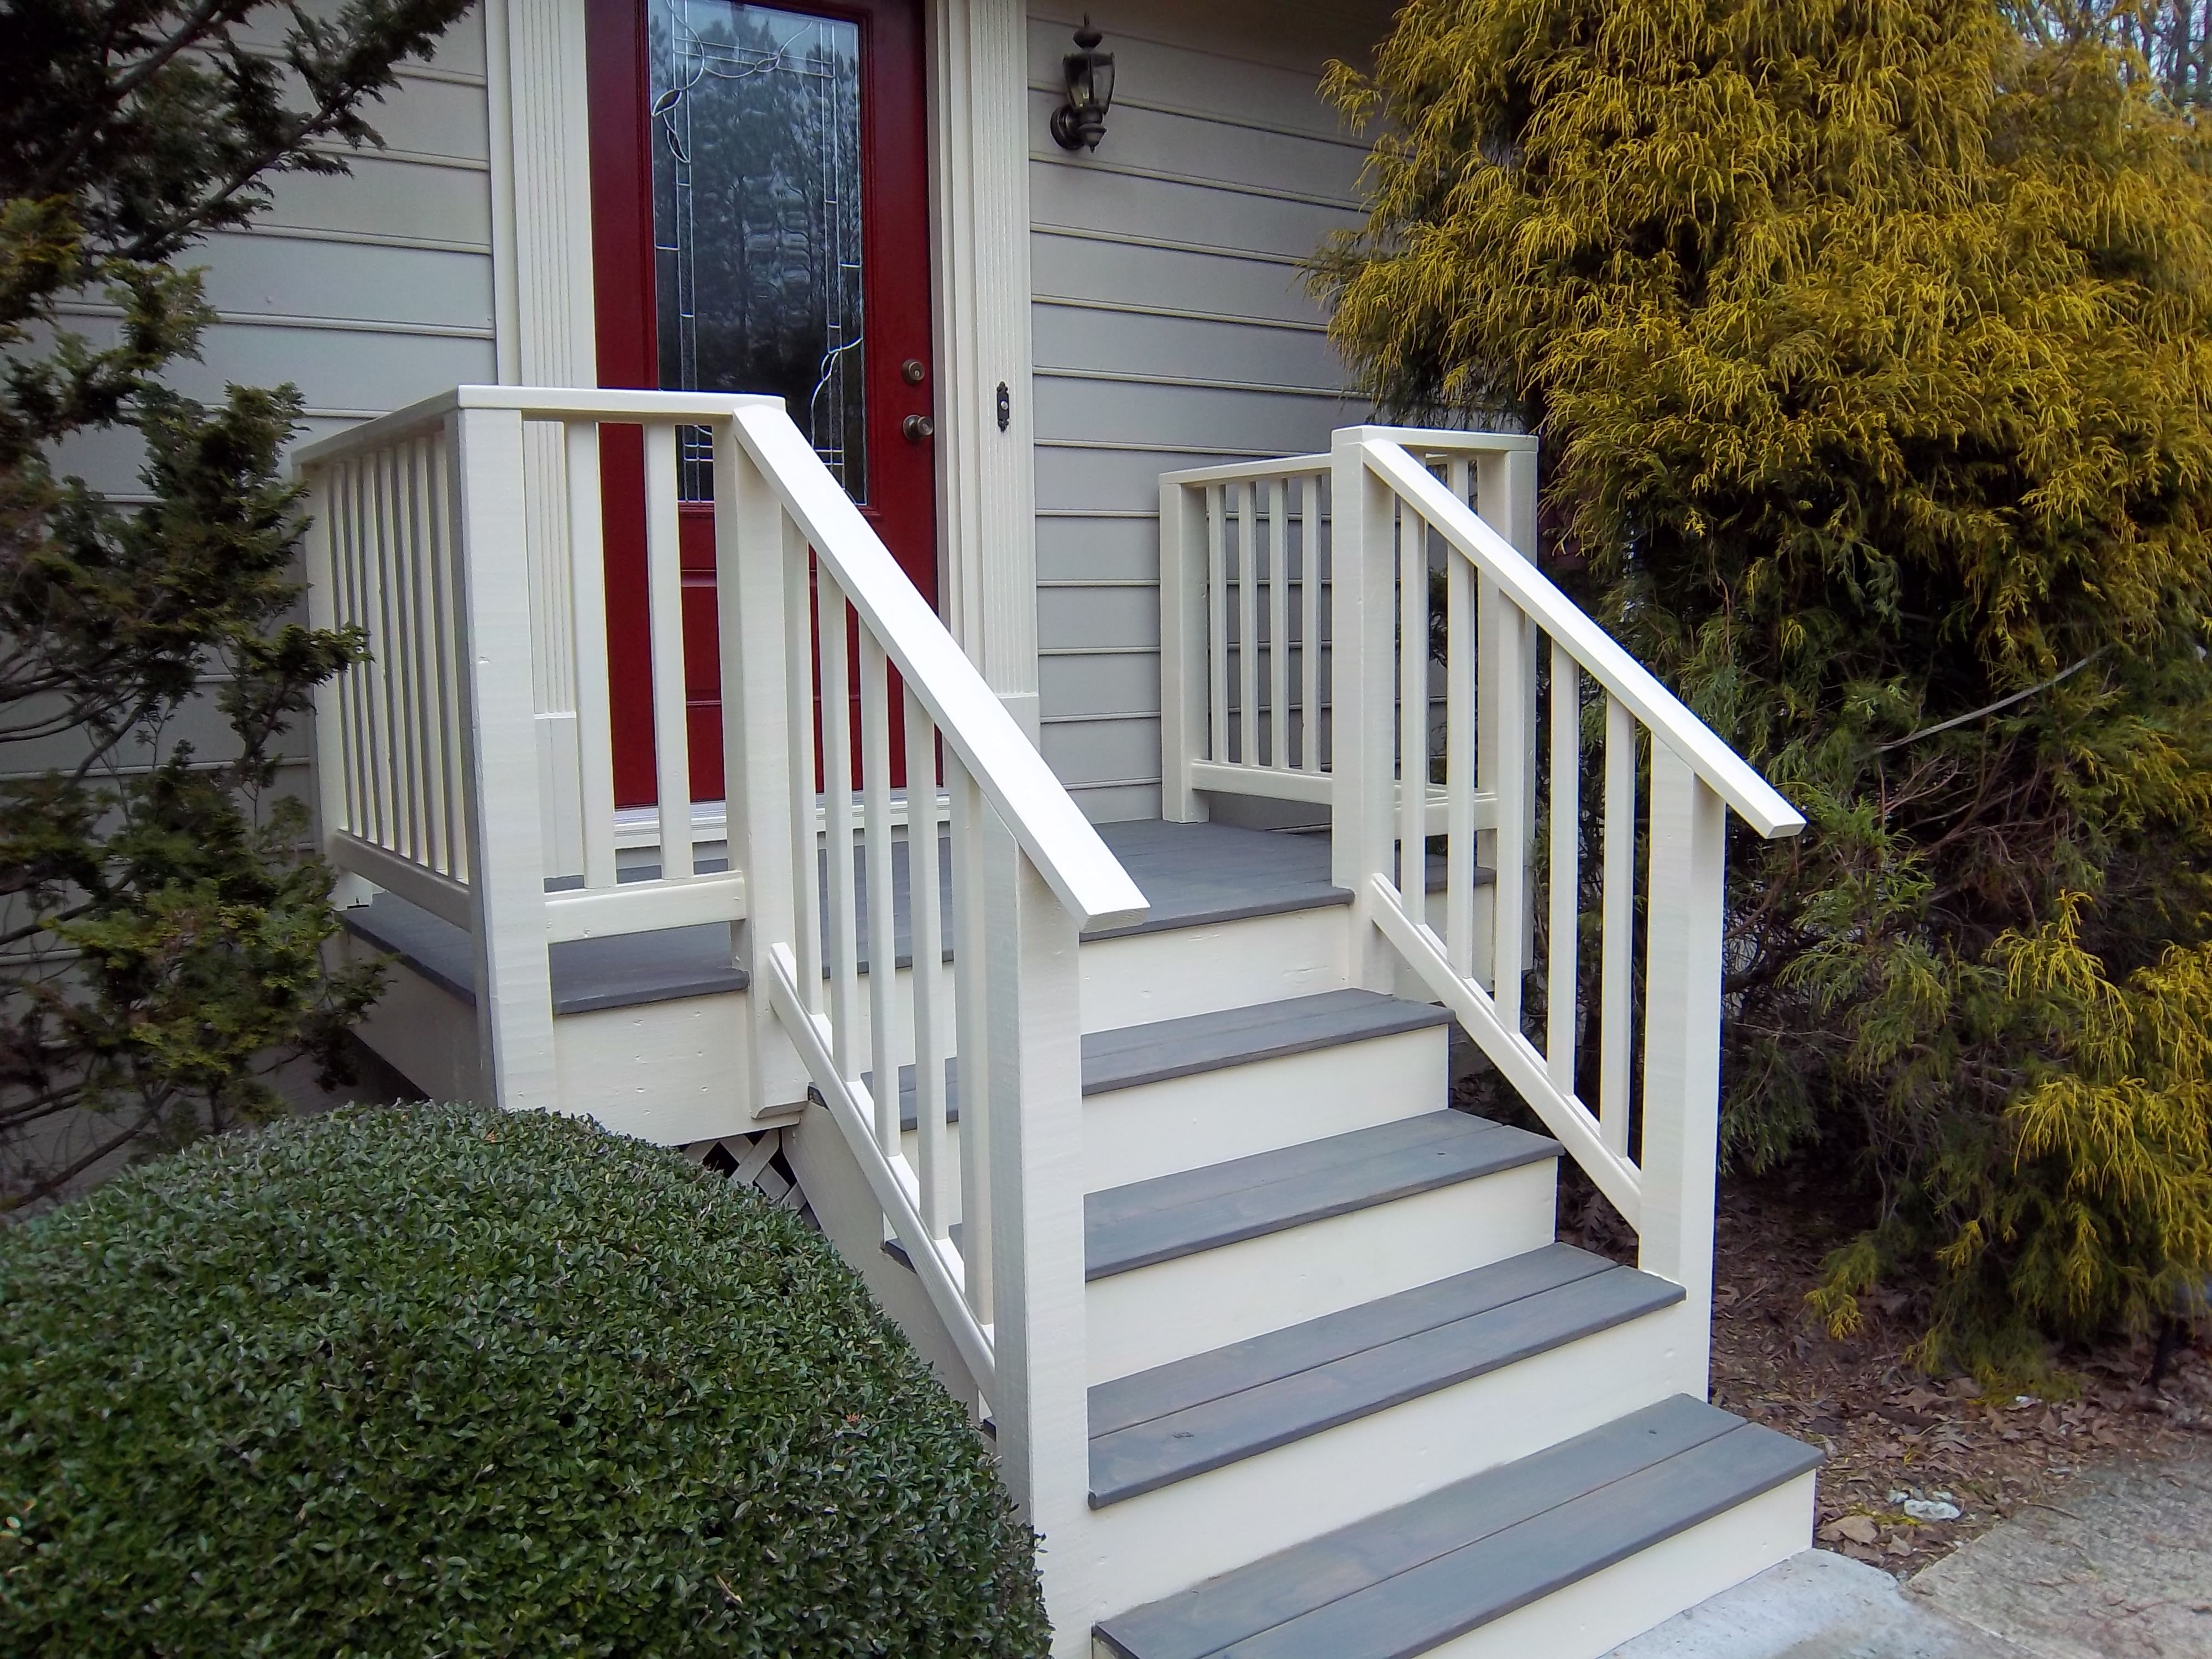 Alternative To Replacing The Concrete Steps    Use Wood Instead!